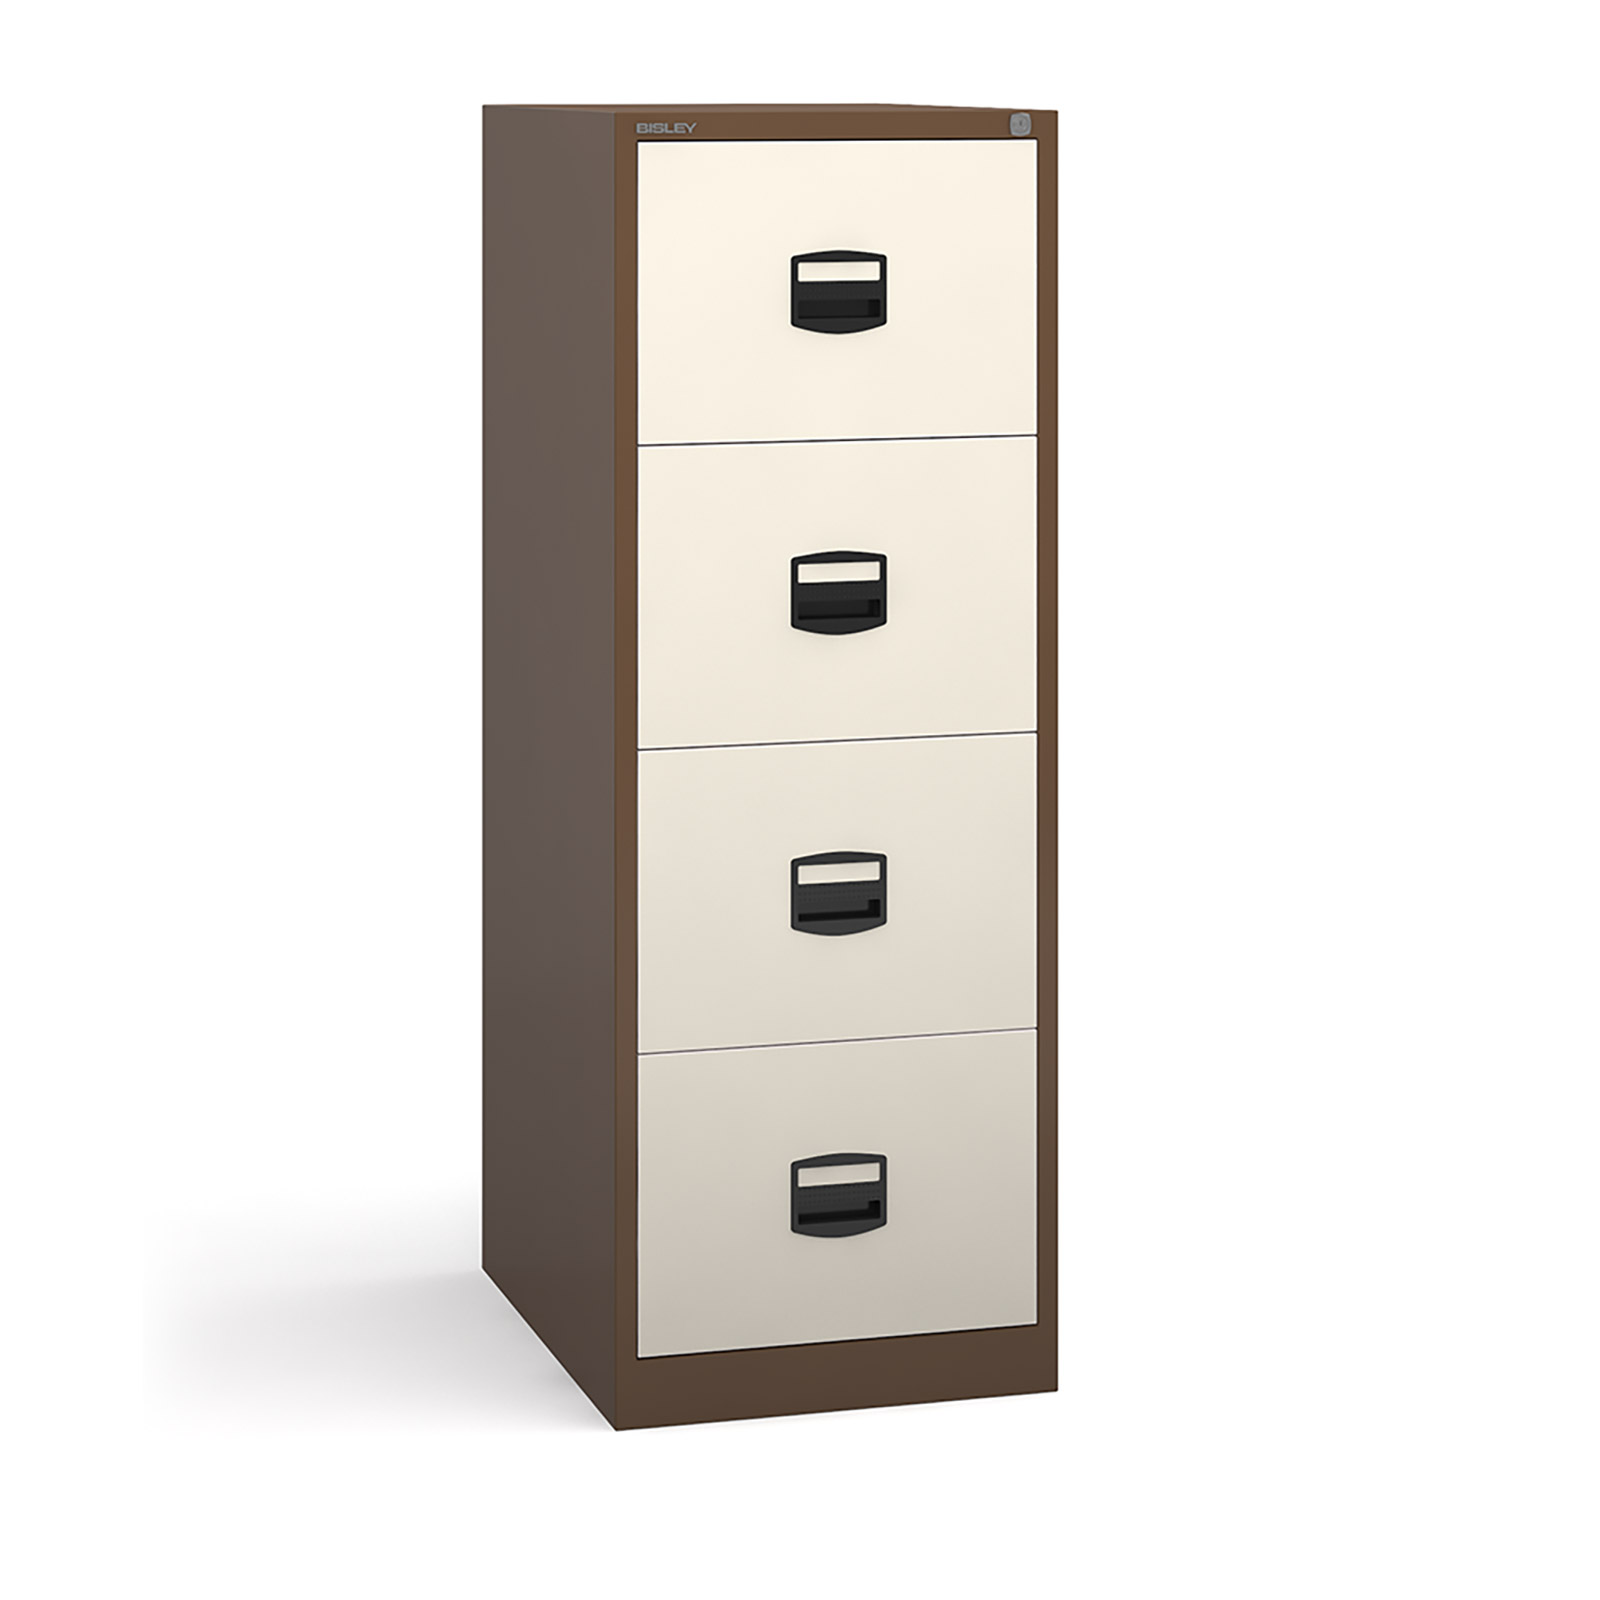 4 drawer contract filing cabinet in Coffee Cream